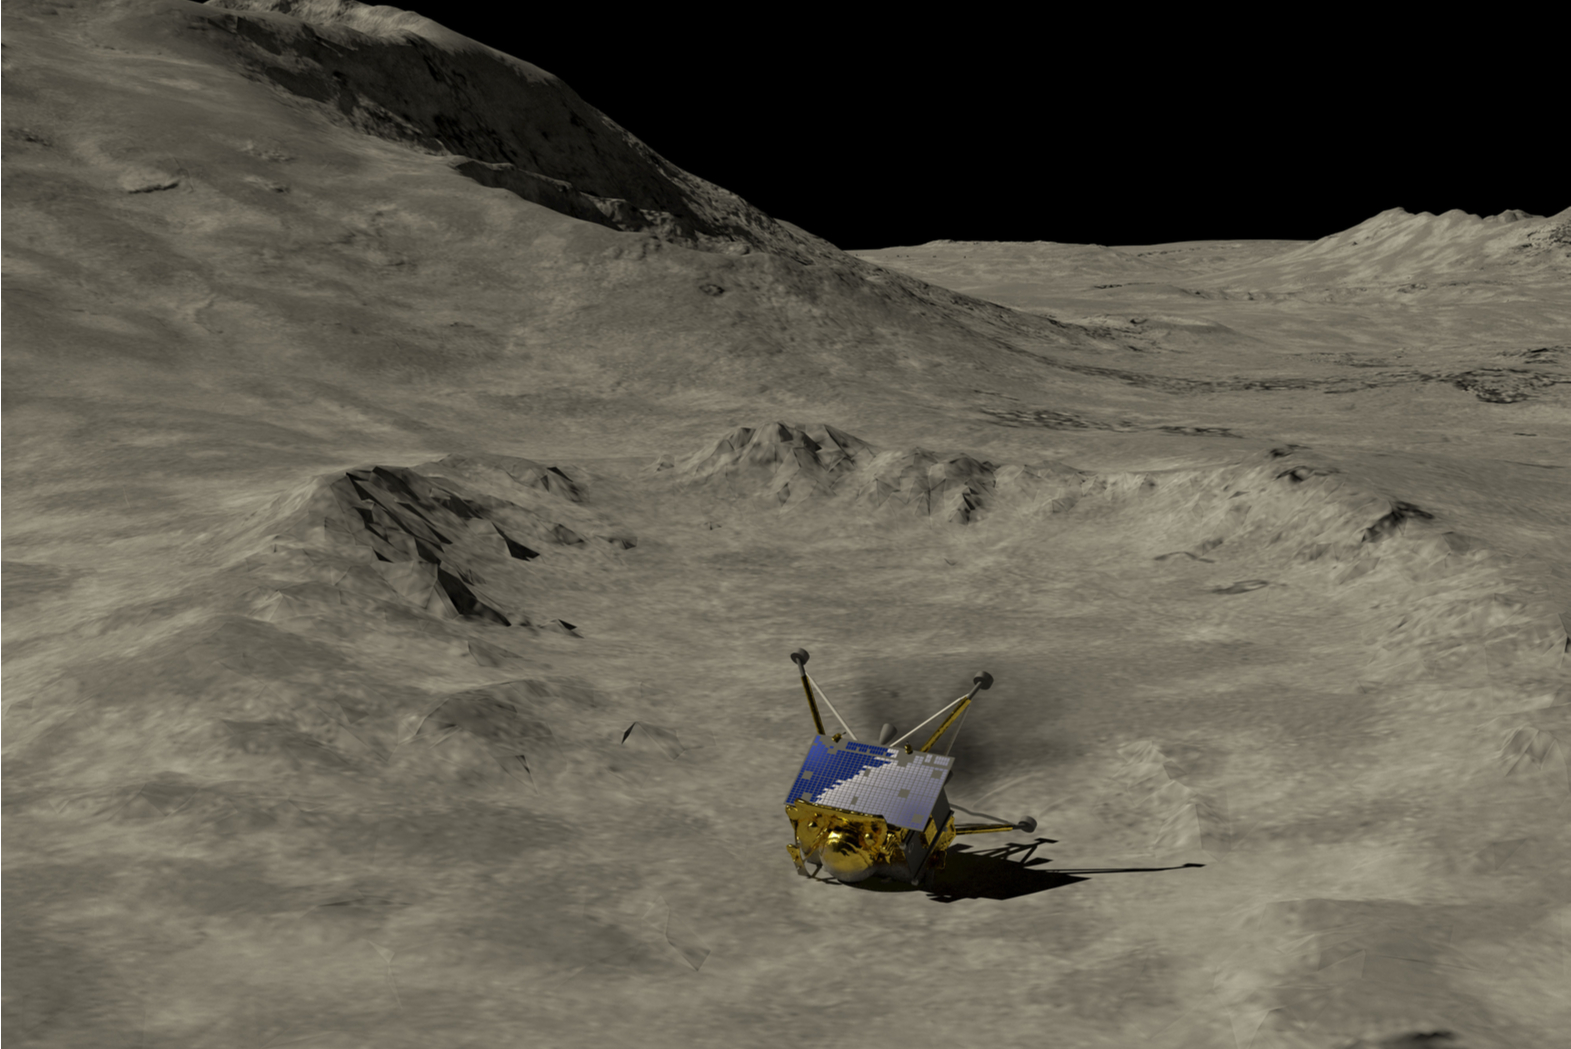 Supreme Court hears UK parliament prorogation appeal / NASA Orbiter passes over lost Chandrayaan 2 lander / MIT holds EmTech conference